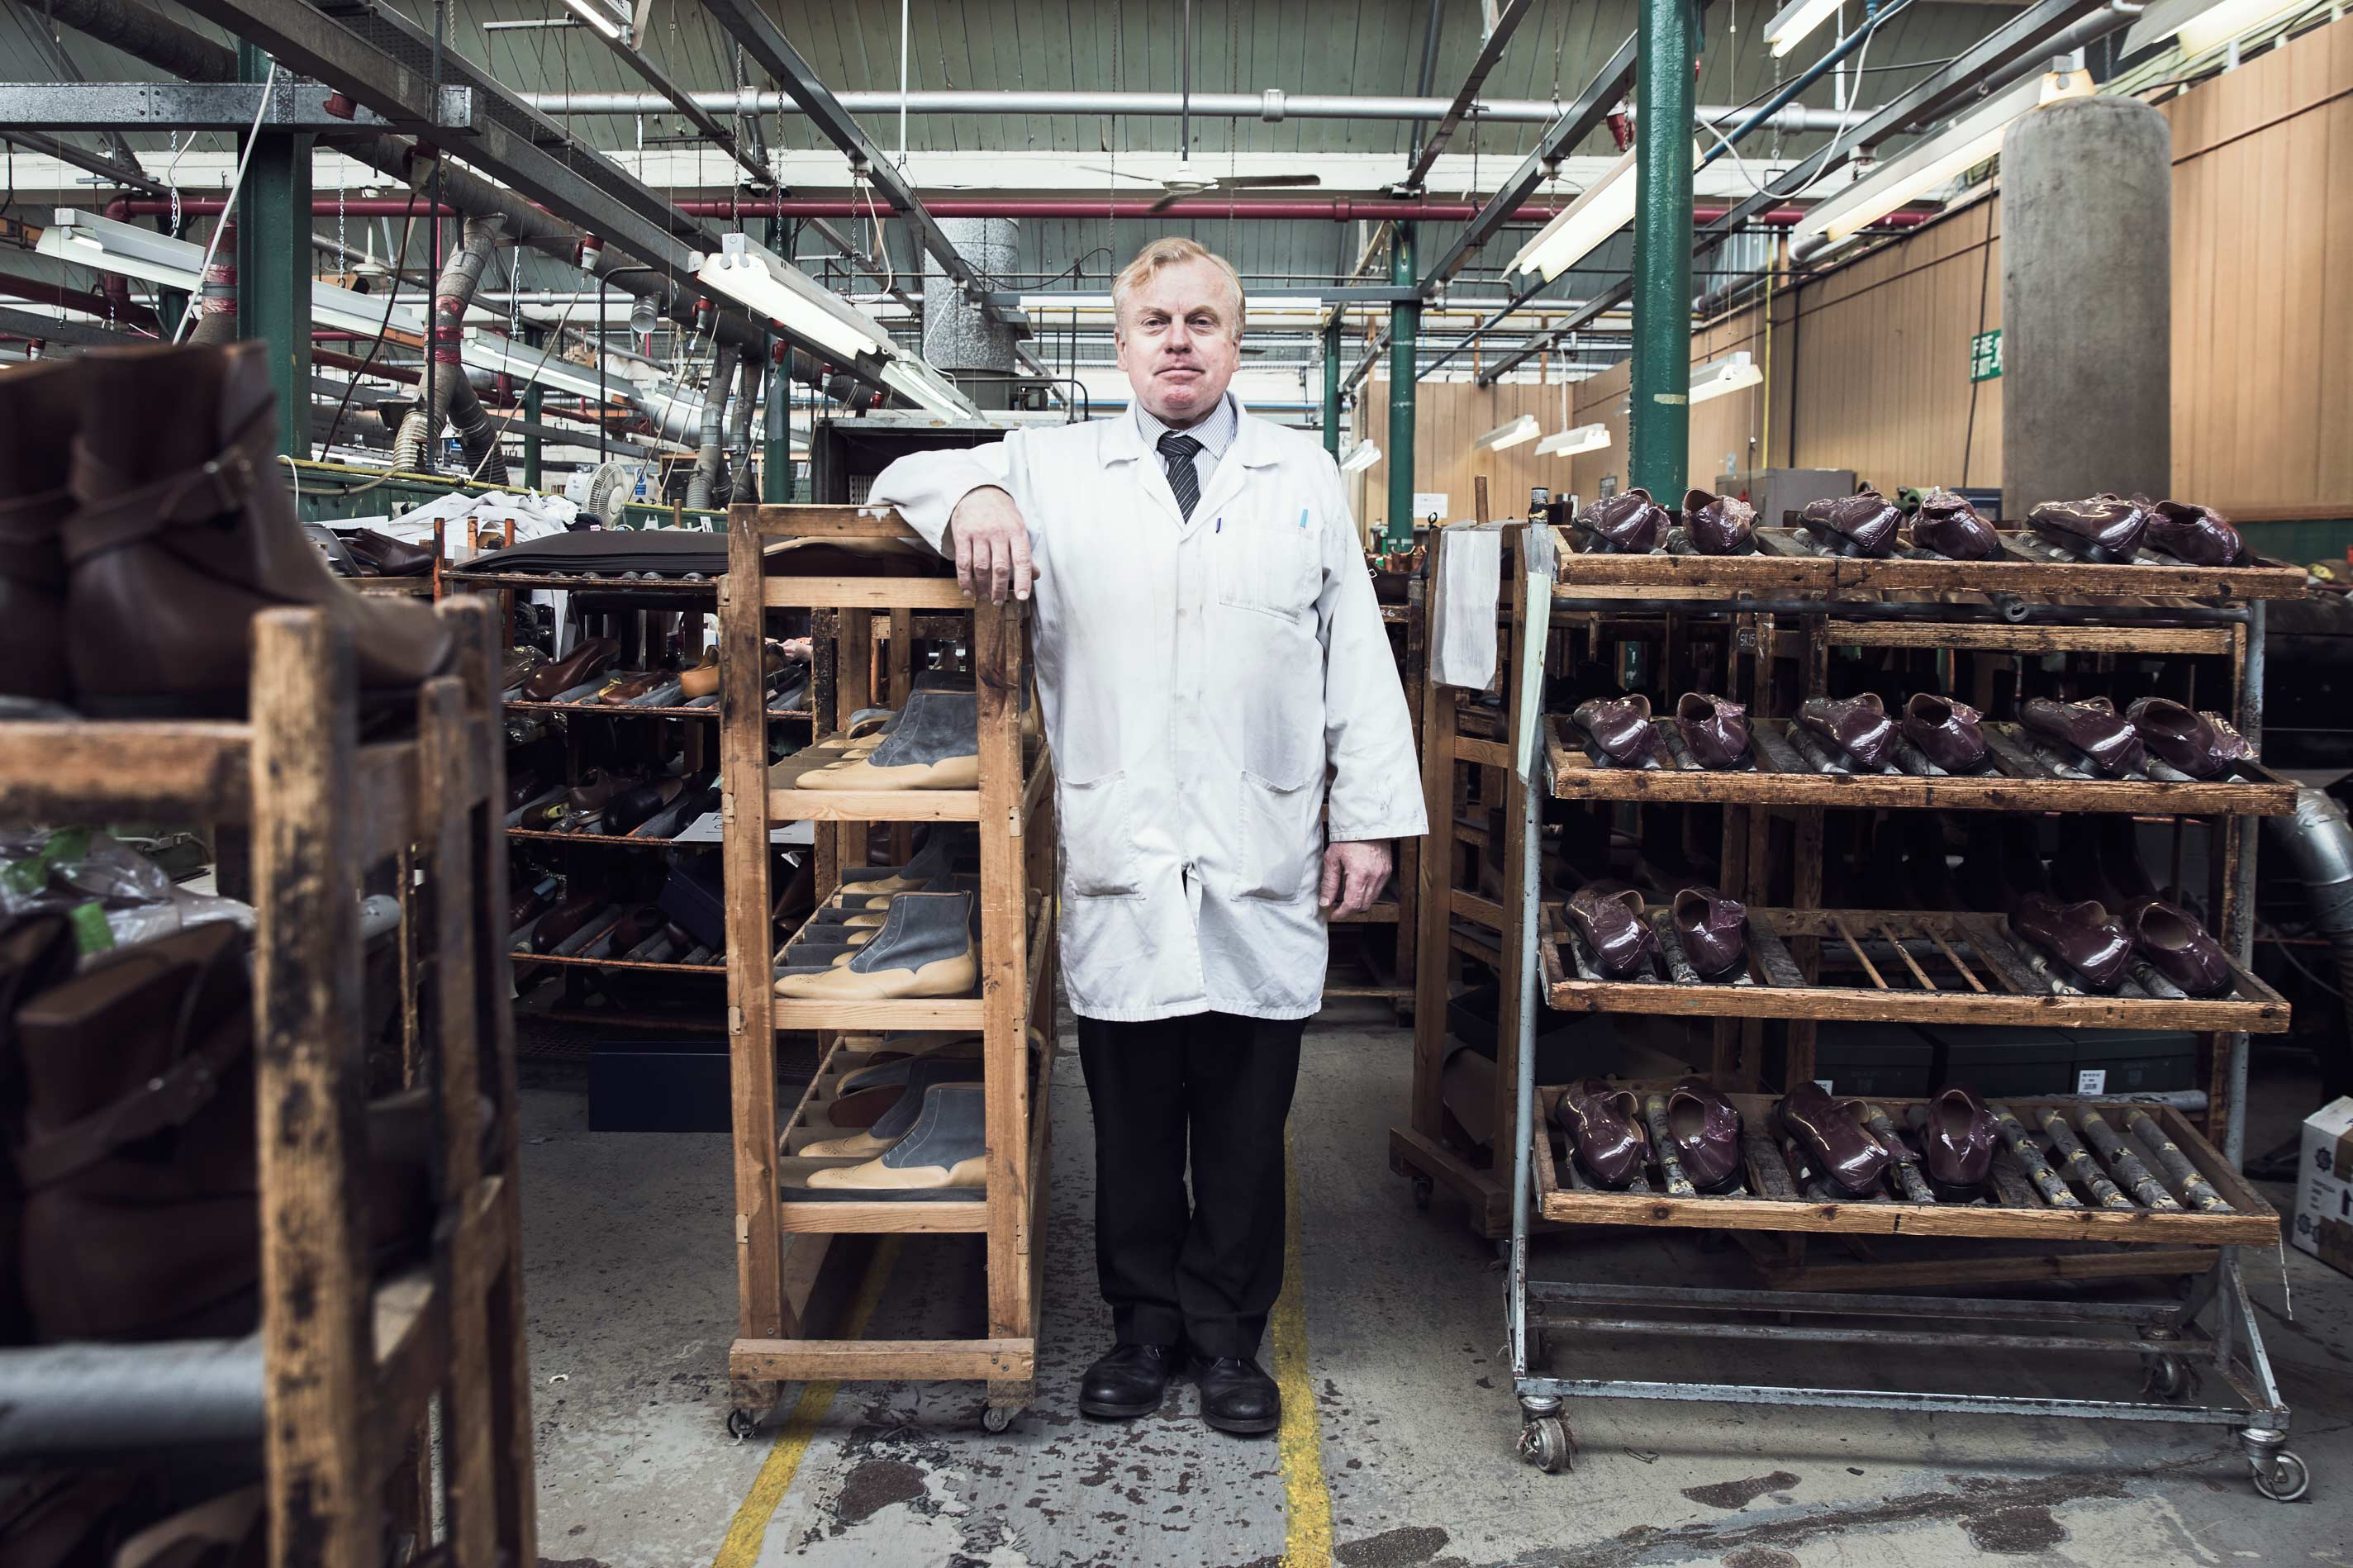 290a37cb30 Based in Northamptonshire, the shoemaking capital of the UK, Paul Sargent  continues his family tradition using techniques used by generations to  produce ...